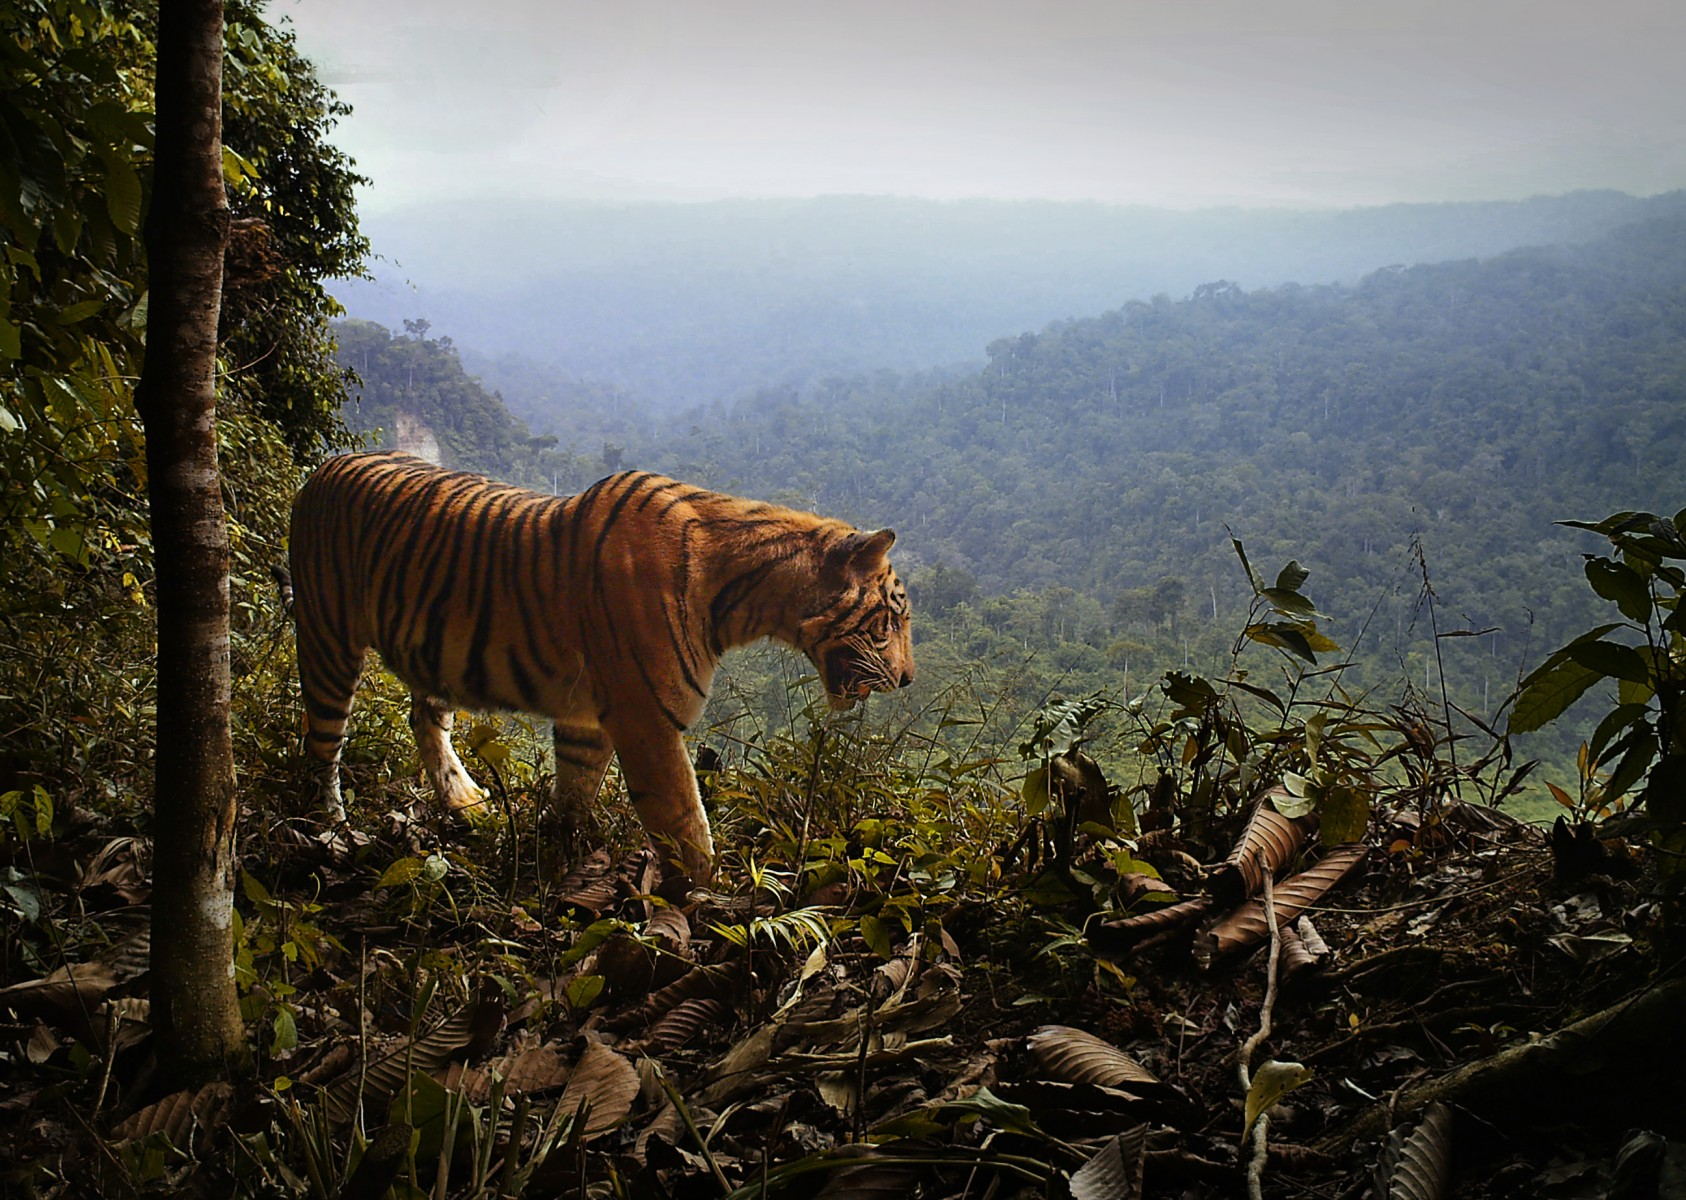 An observed uptick in tiger population density in Sumatra's protected forests may result from the endangered cats fleeing unprotected nearby forests, according to a new study.